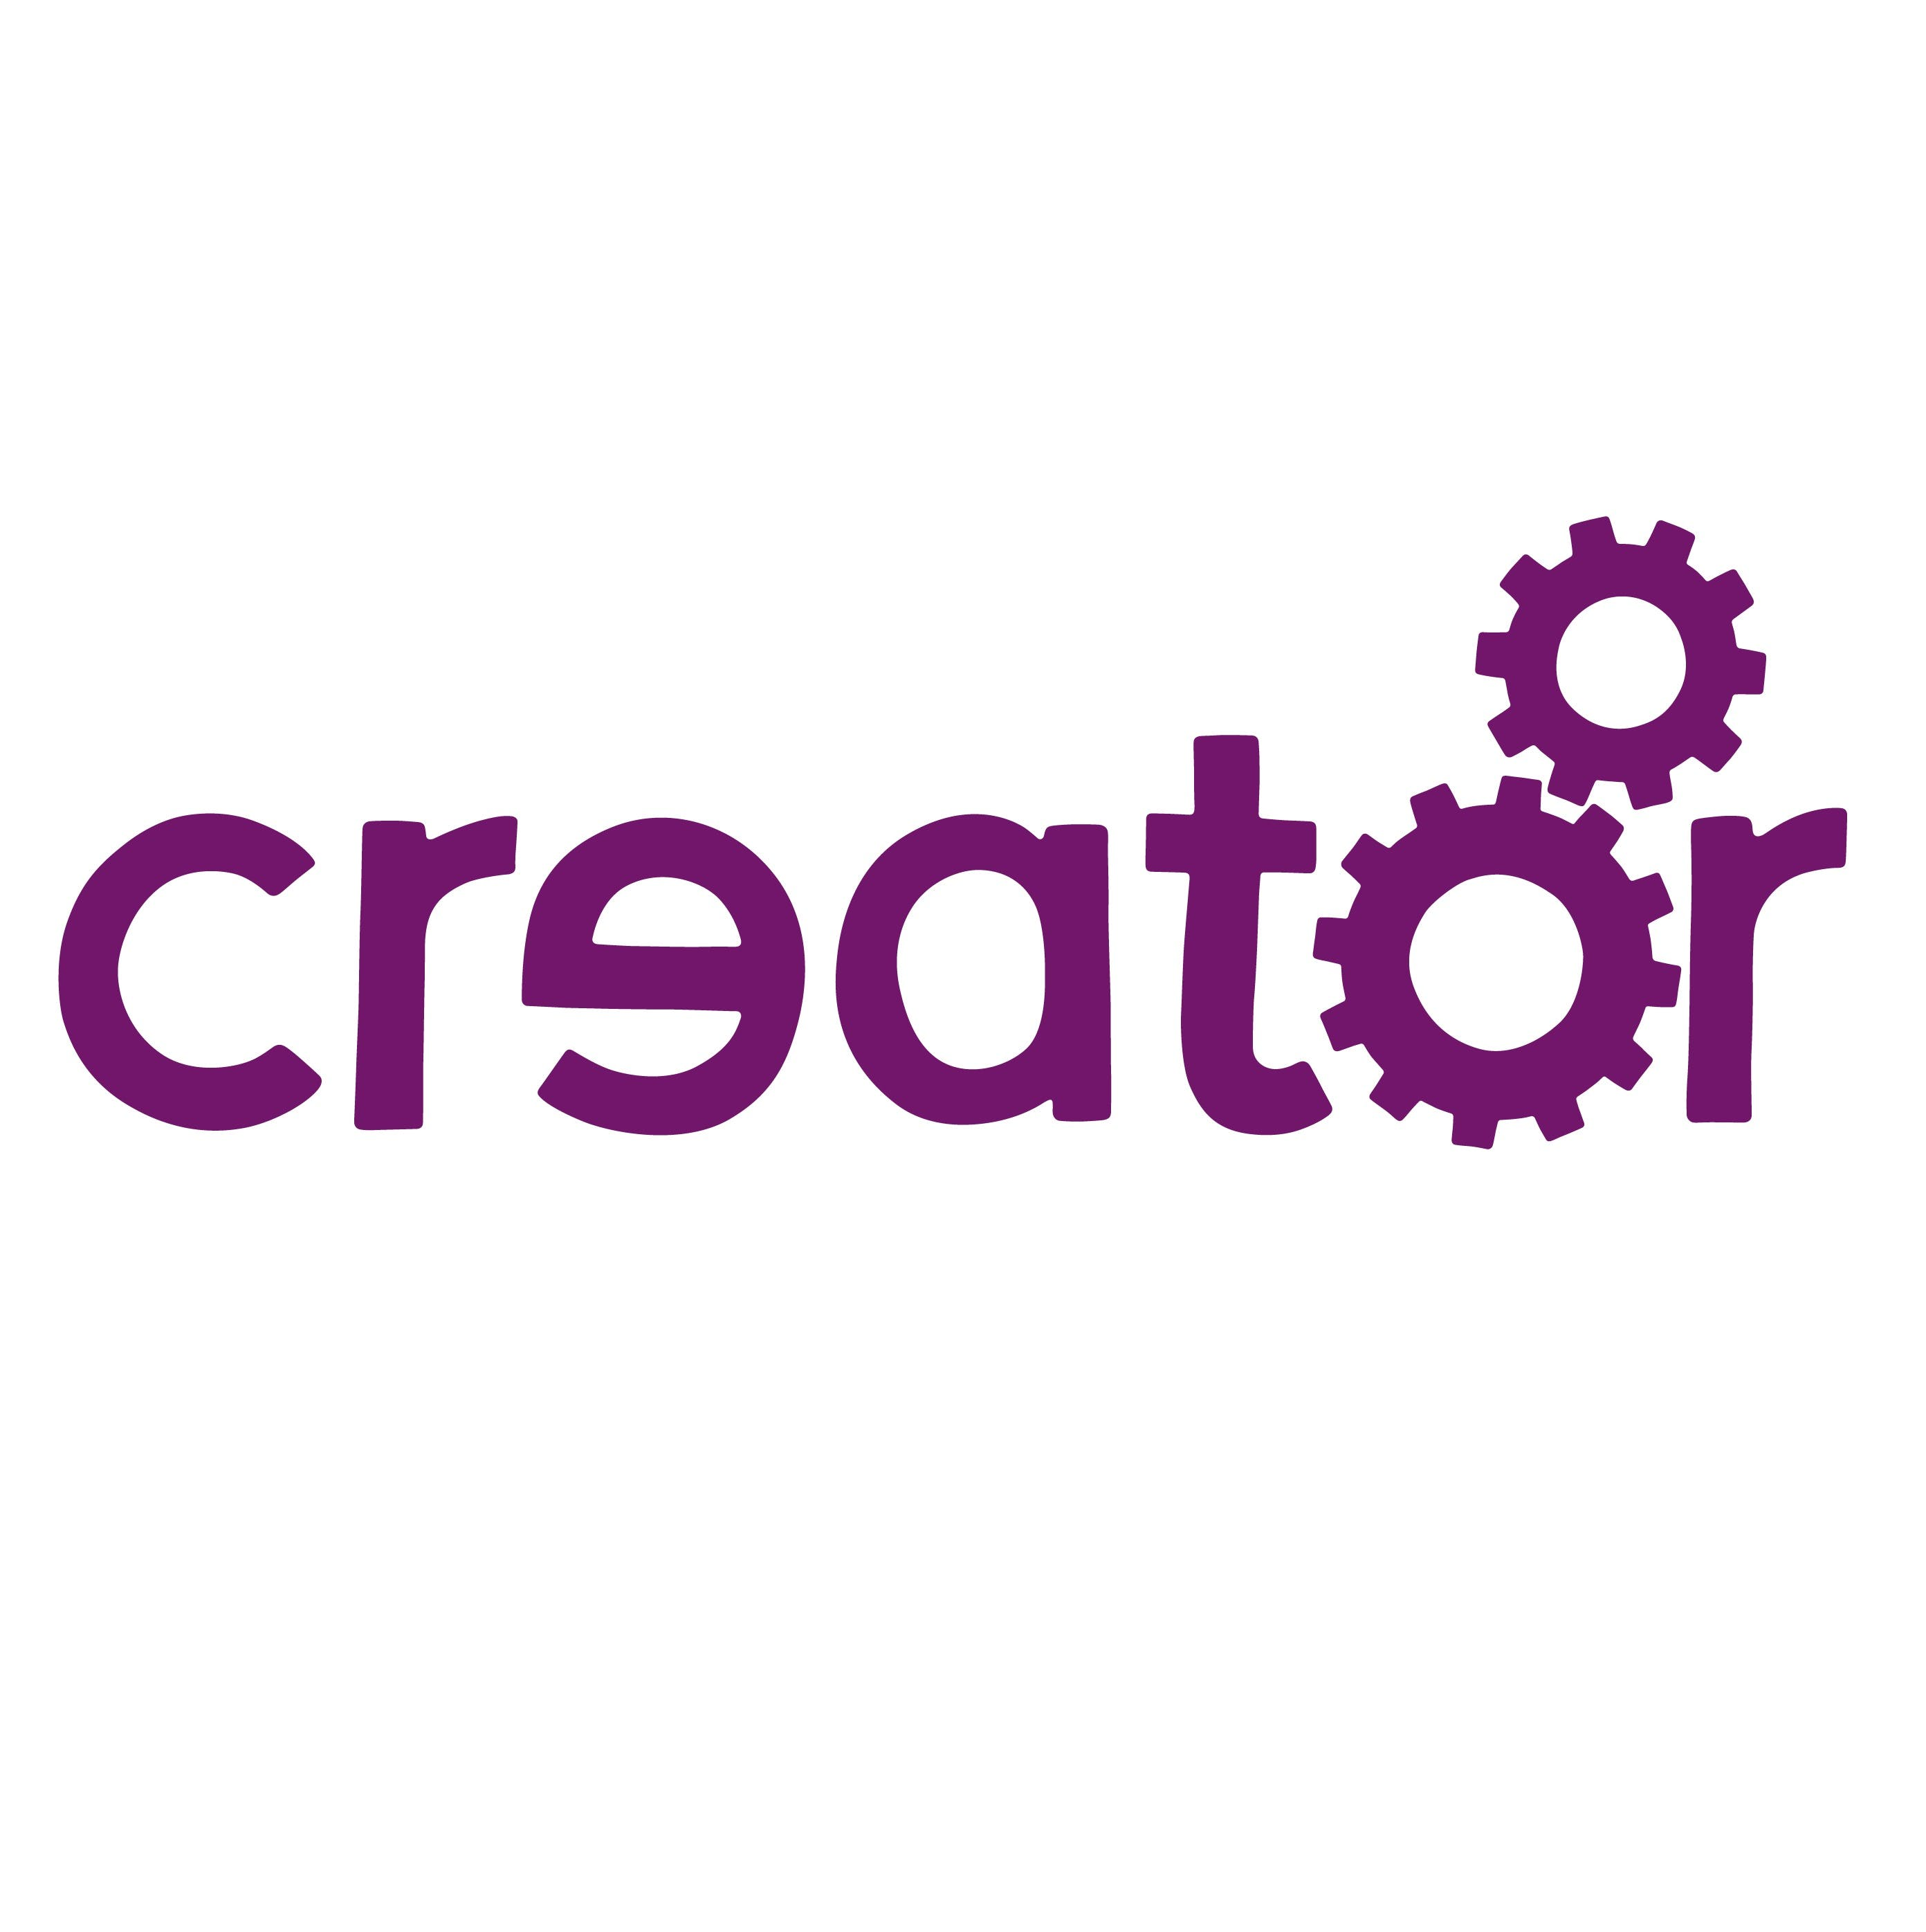 Creator by Imagination